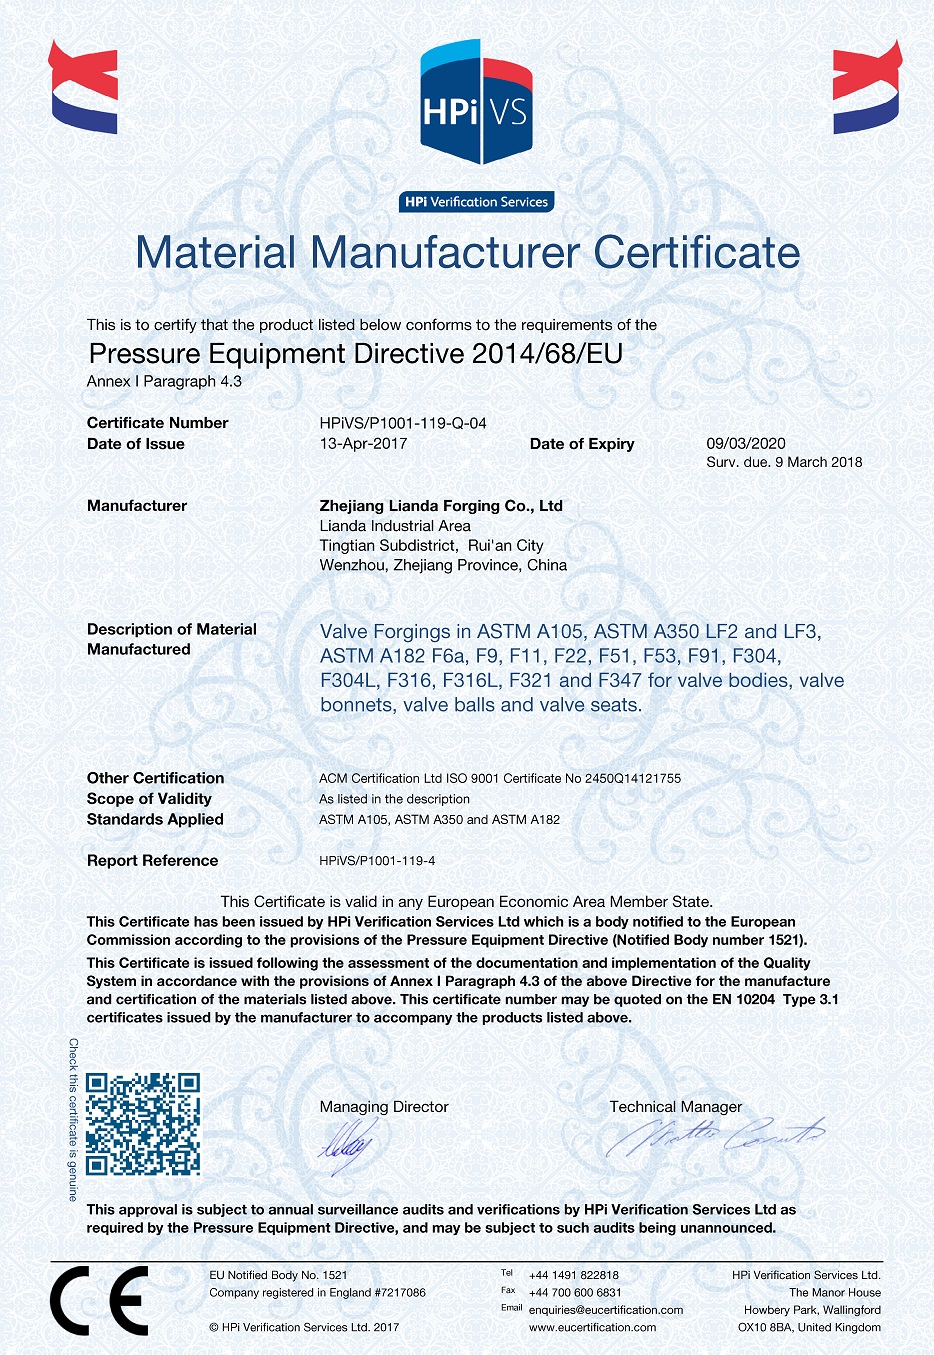 PED 2014/68/EU Certification - LD FORGE